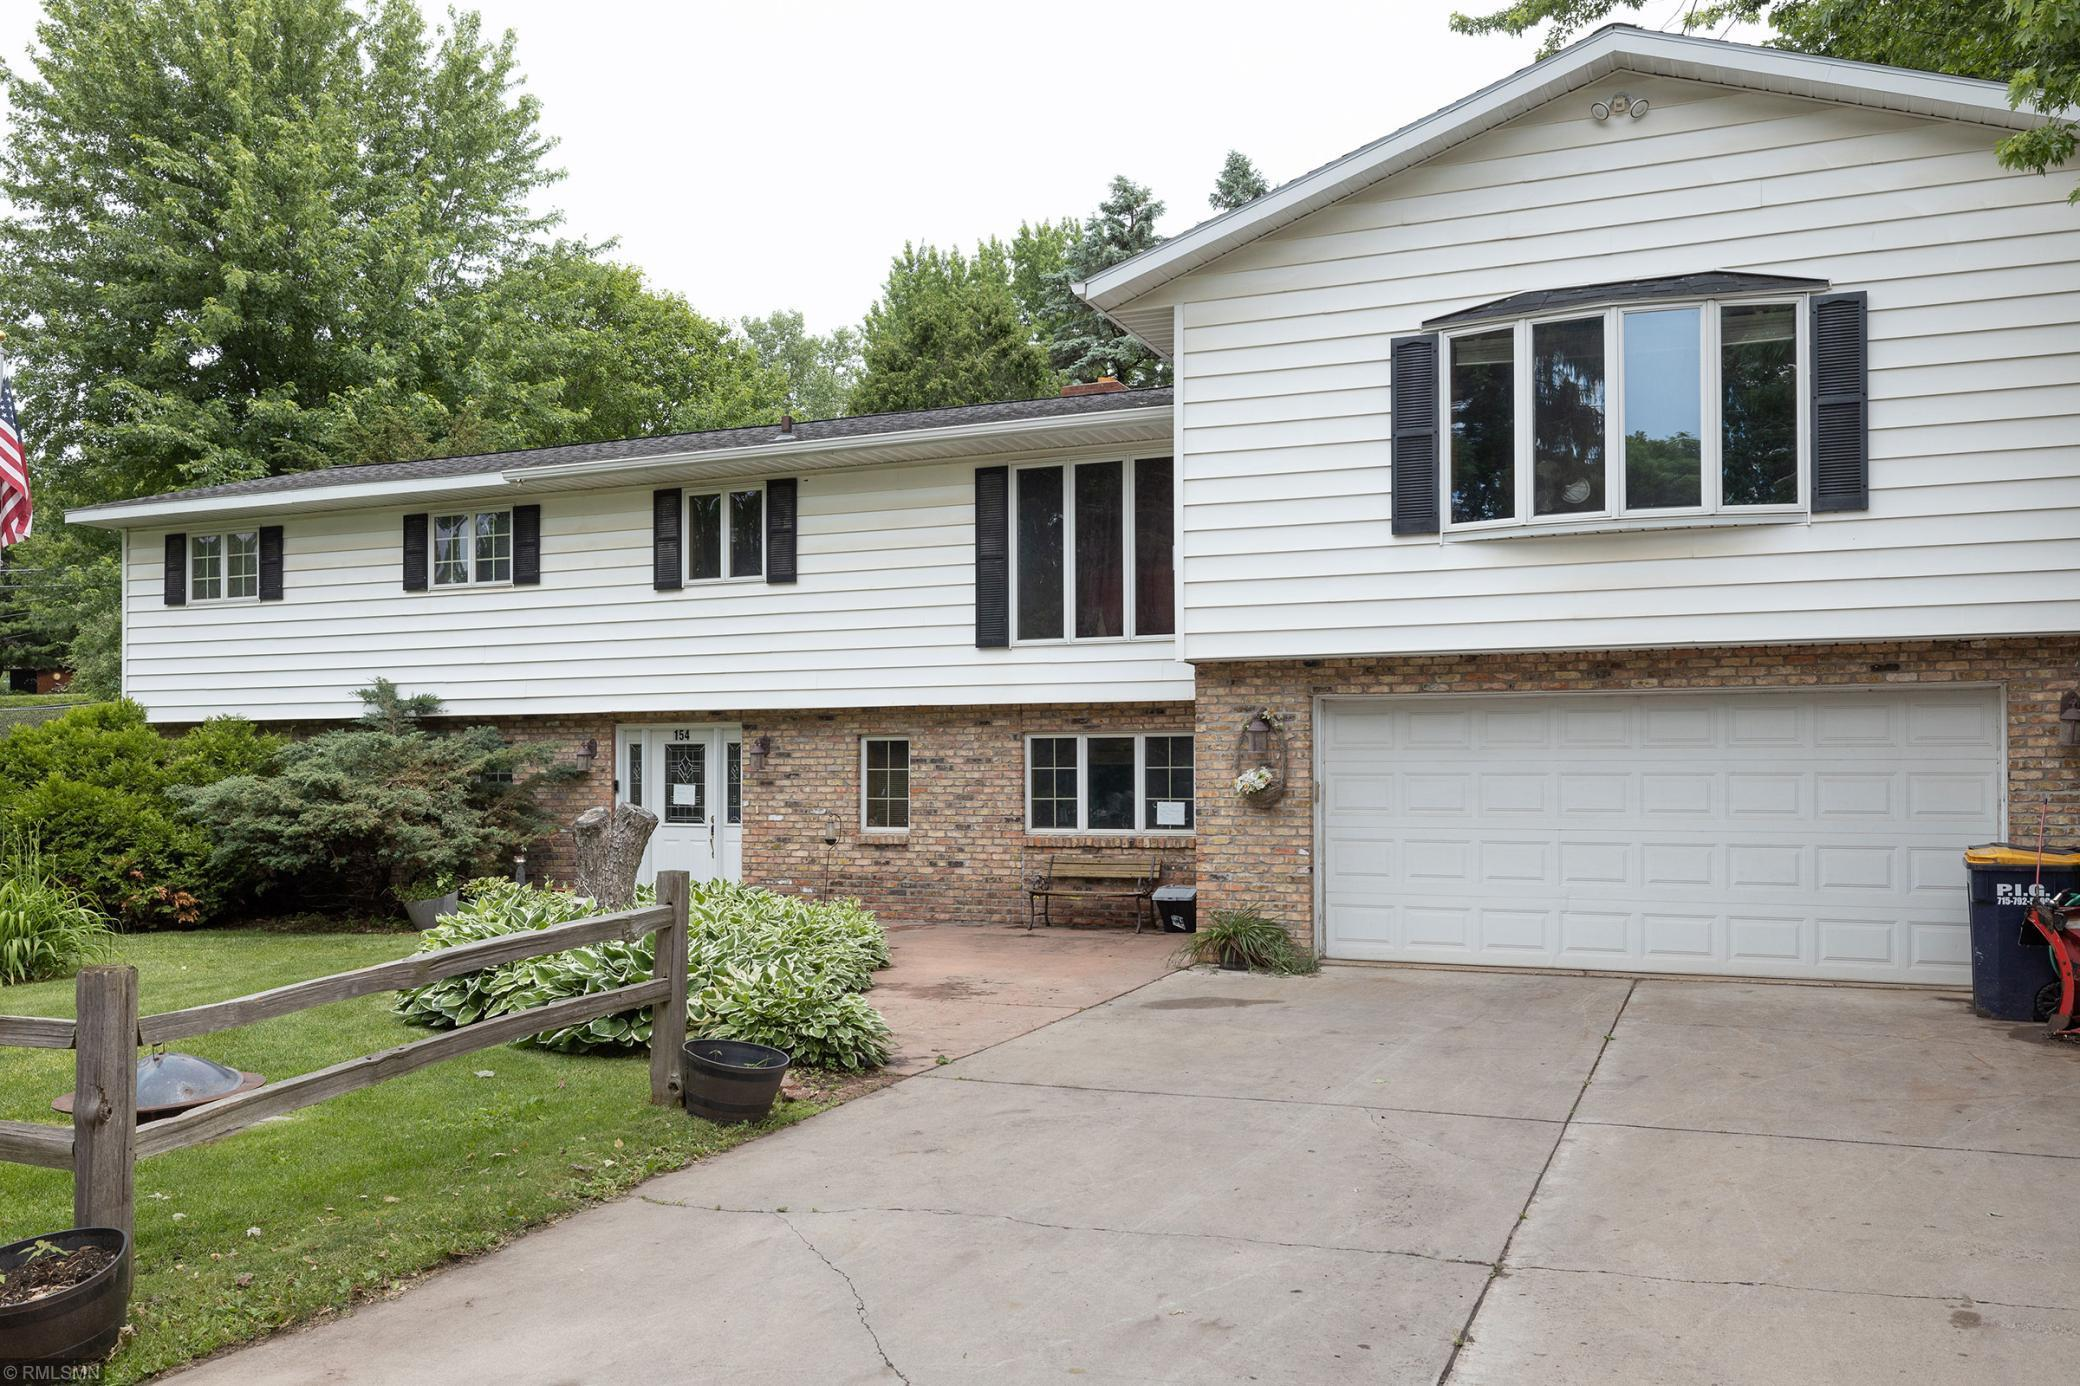 154 Vine S Property Photo - Prescott, WI real estate listing